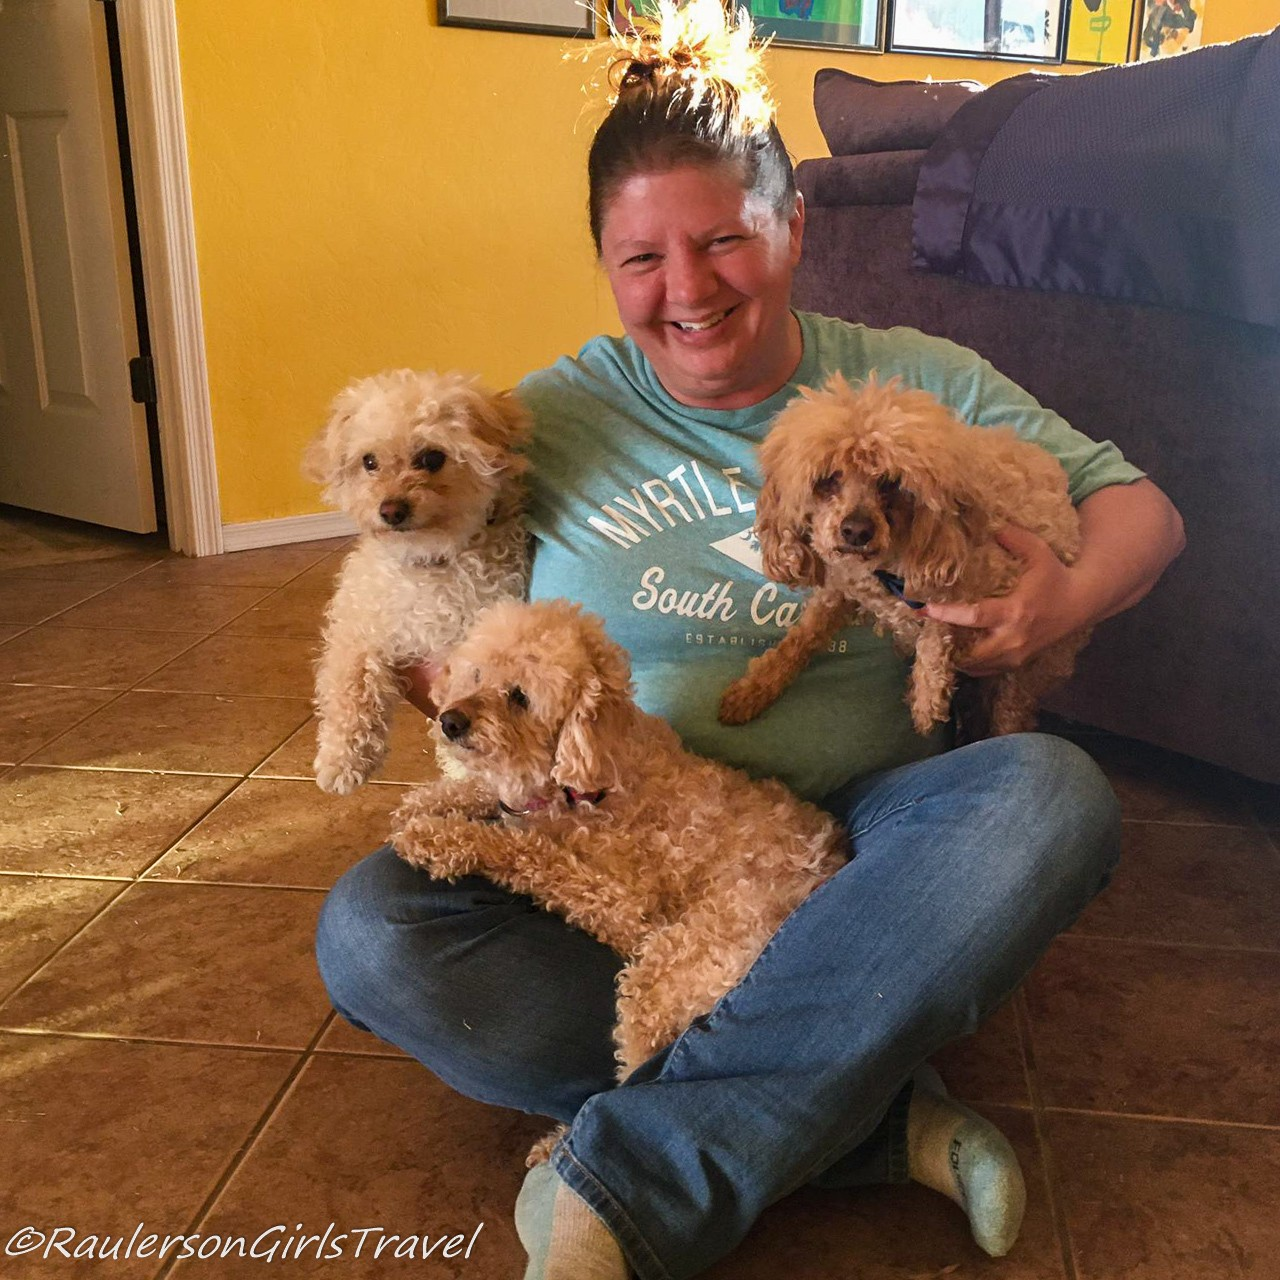 Heather with Gidget, Buddy, and Abigail